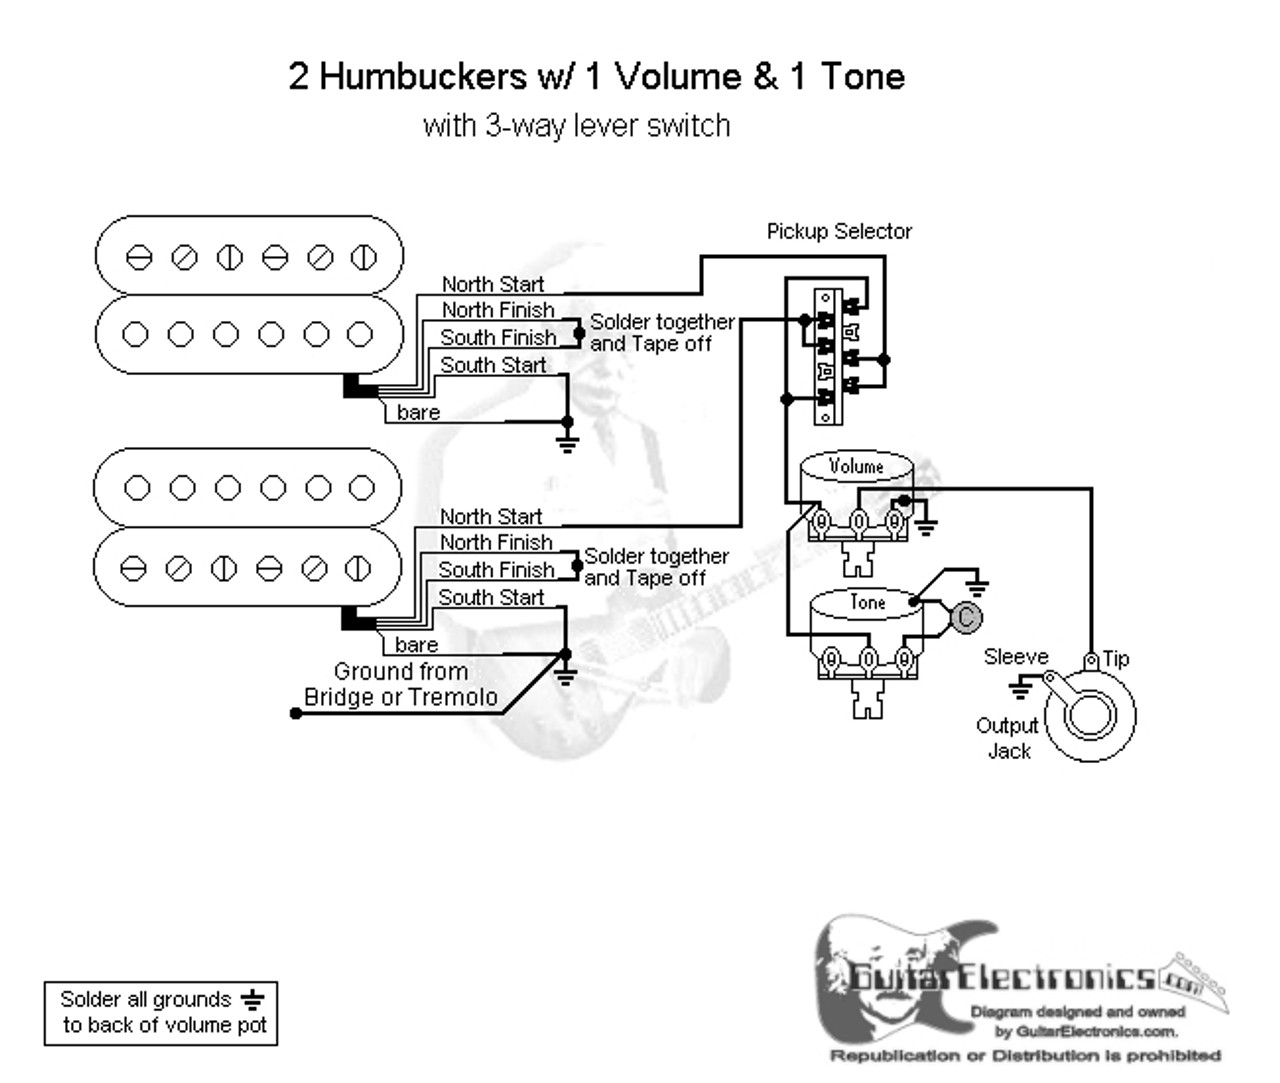 79570 Fender Humbuckers 3 Way Switch Wiring Diagram ... on 3-way switch circuit variations, 3-way switch safety, 3-way switch operation, 3-way switch timer, 3-way switch hook up, 3-way wire colors, 3-way dimmer switch schematic, 3-way wiring fan with light, 3-way switch diagrams, 3-way wiring two switches, 3-way lamp wiring diagram, 3-way switch installation, 3 wire switch schematic, 3-way switch controls, 3-way light schematic, 3-way switch two lights, 3-way wiring diagram multiple lights, 4-way light switch schematic, 3-way switches for dummies,